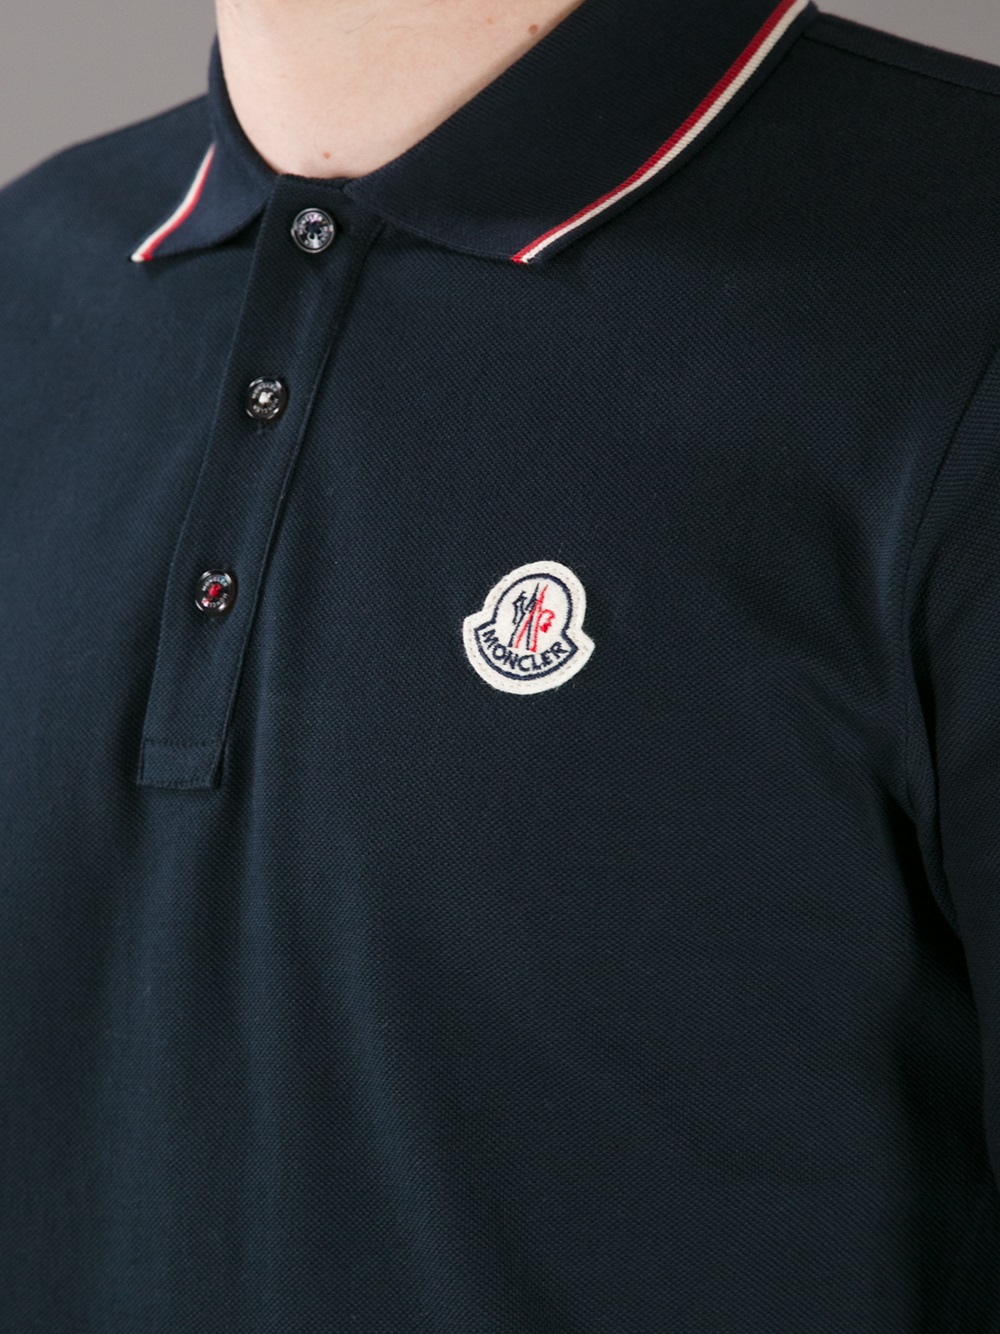 Moncler Polo Shirt White